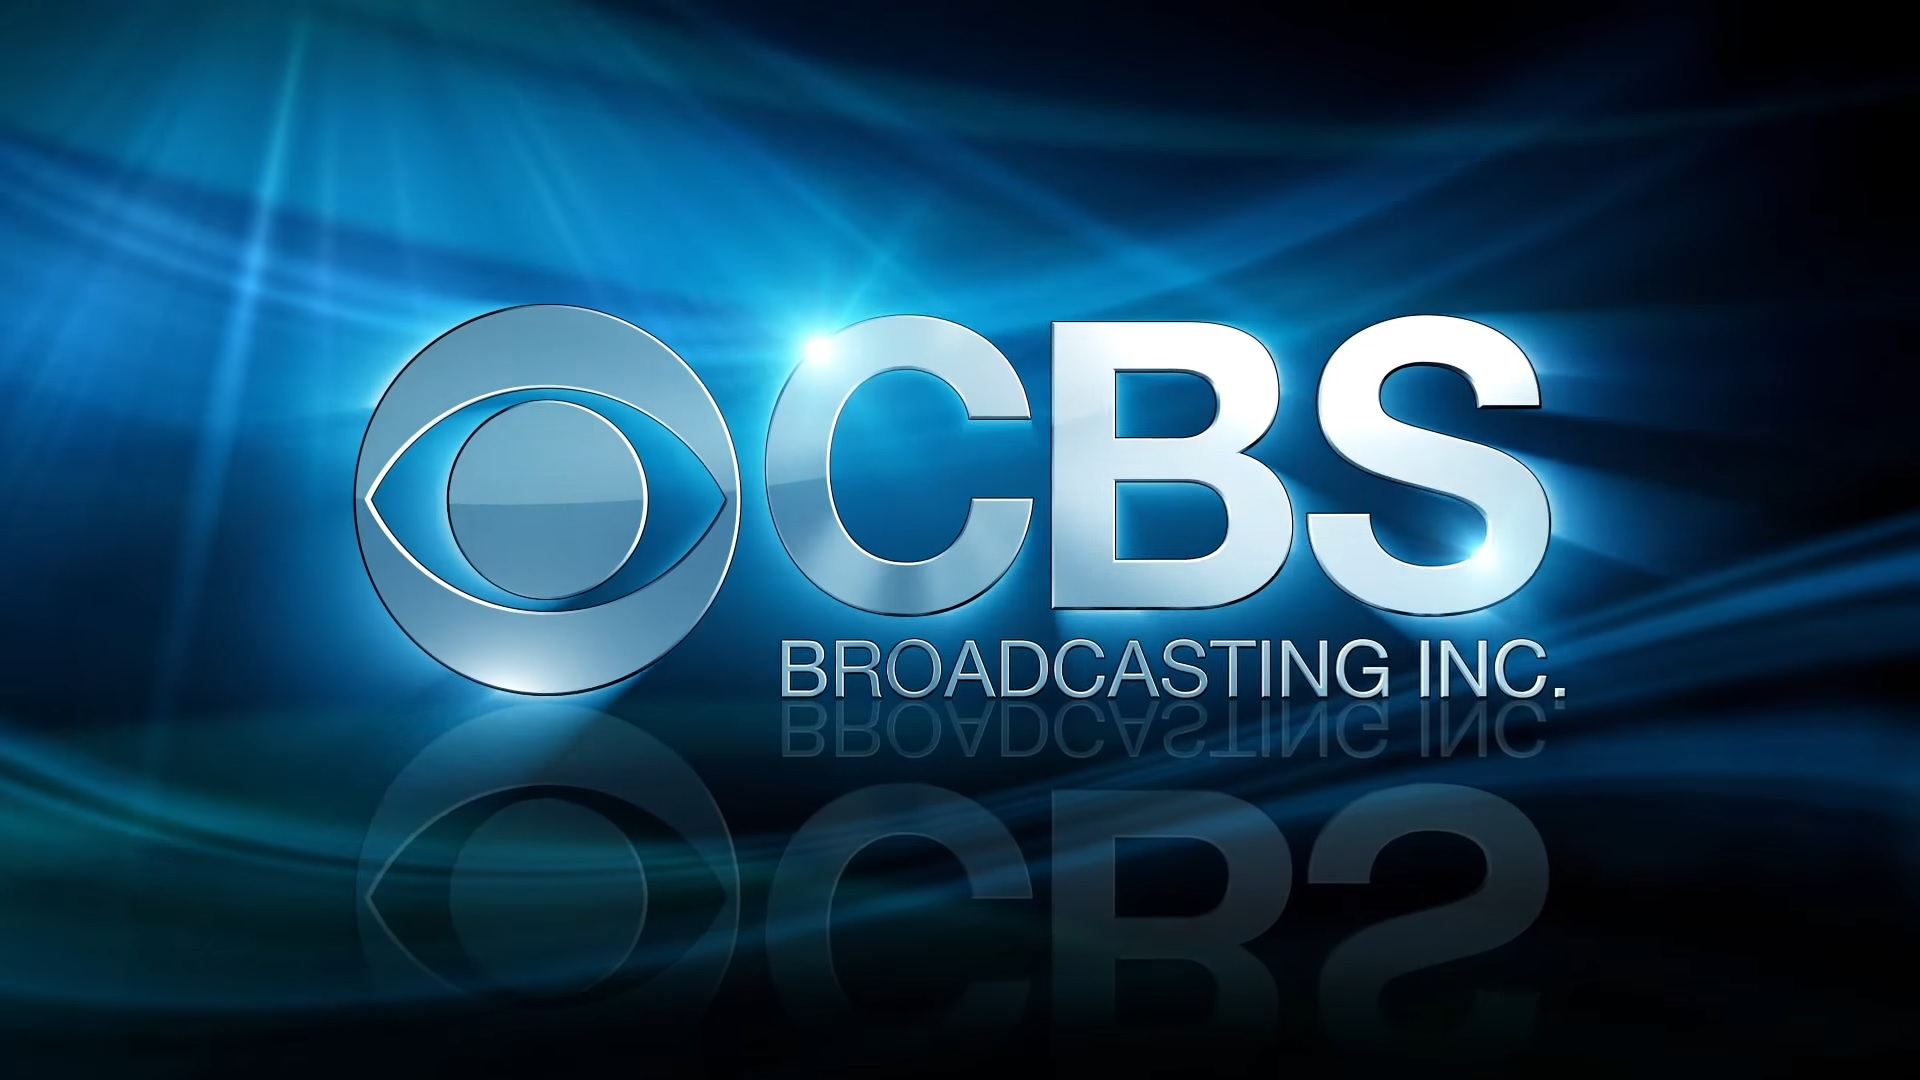 CBS Broadcasting Inc./Other